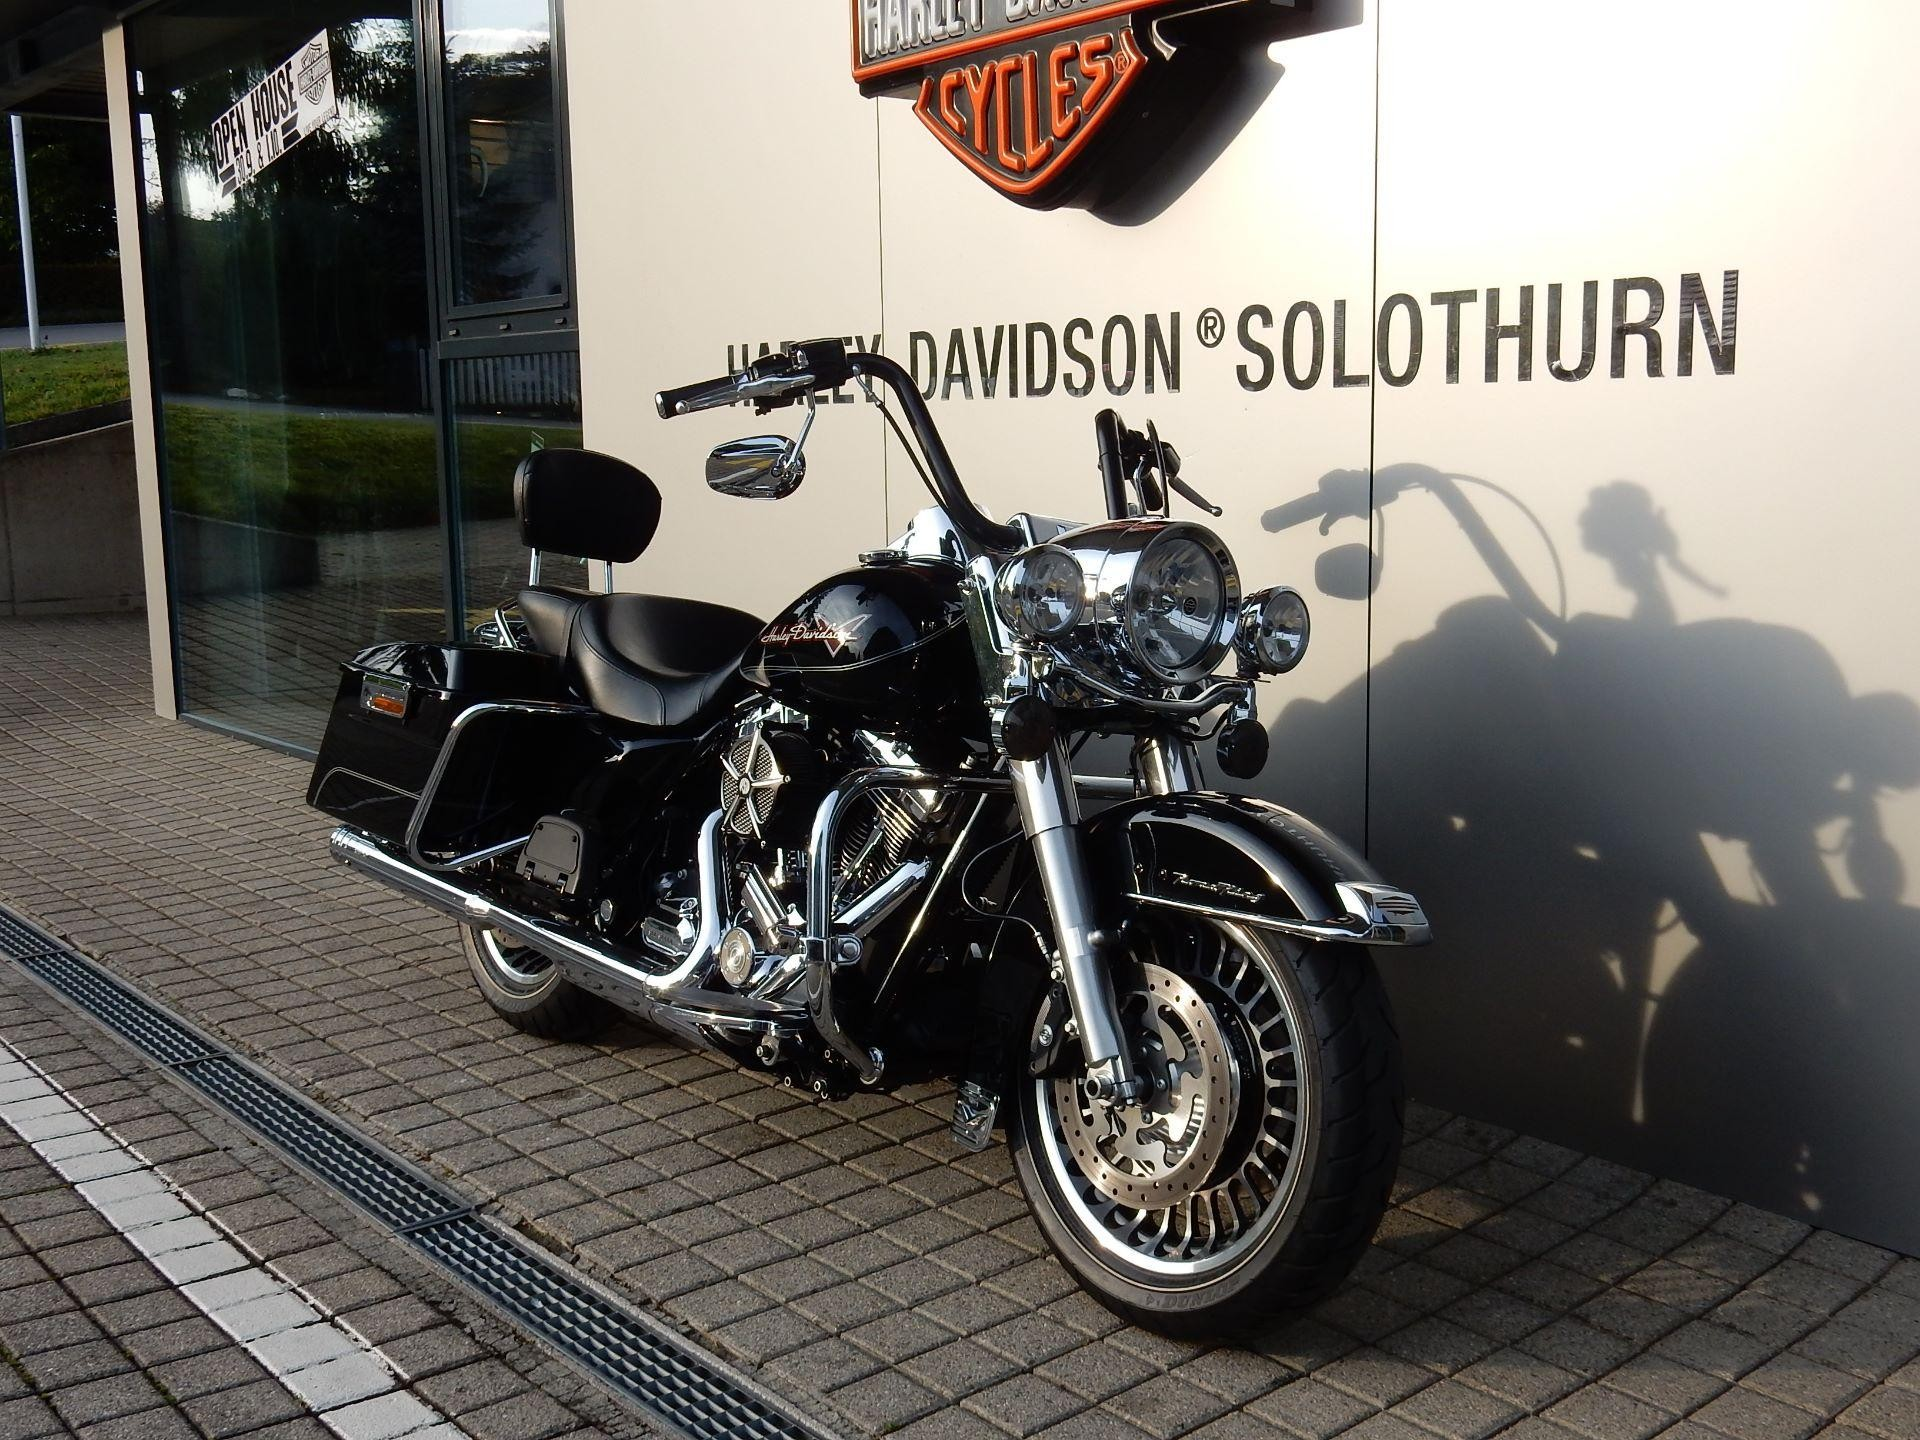 moto occasions acheter harley davidson flhr 1584 road king abs arni harley davidson hessigkofen. Black Bedroom Furniture Sets. Home Design Ideas